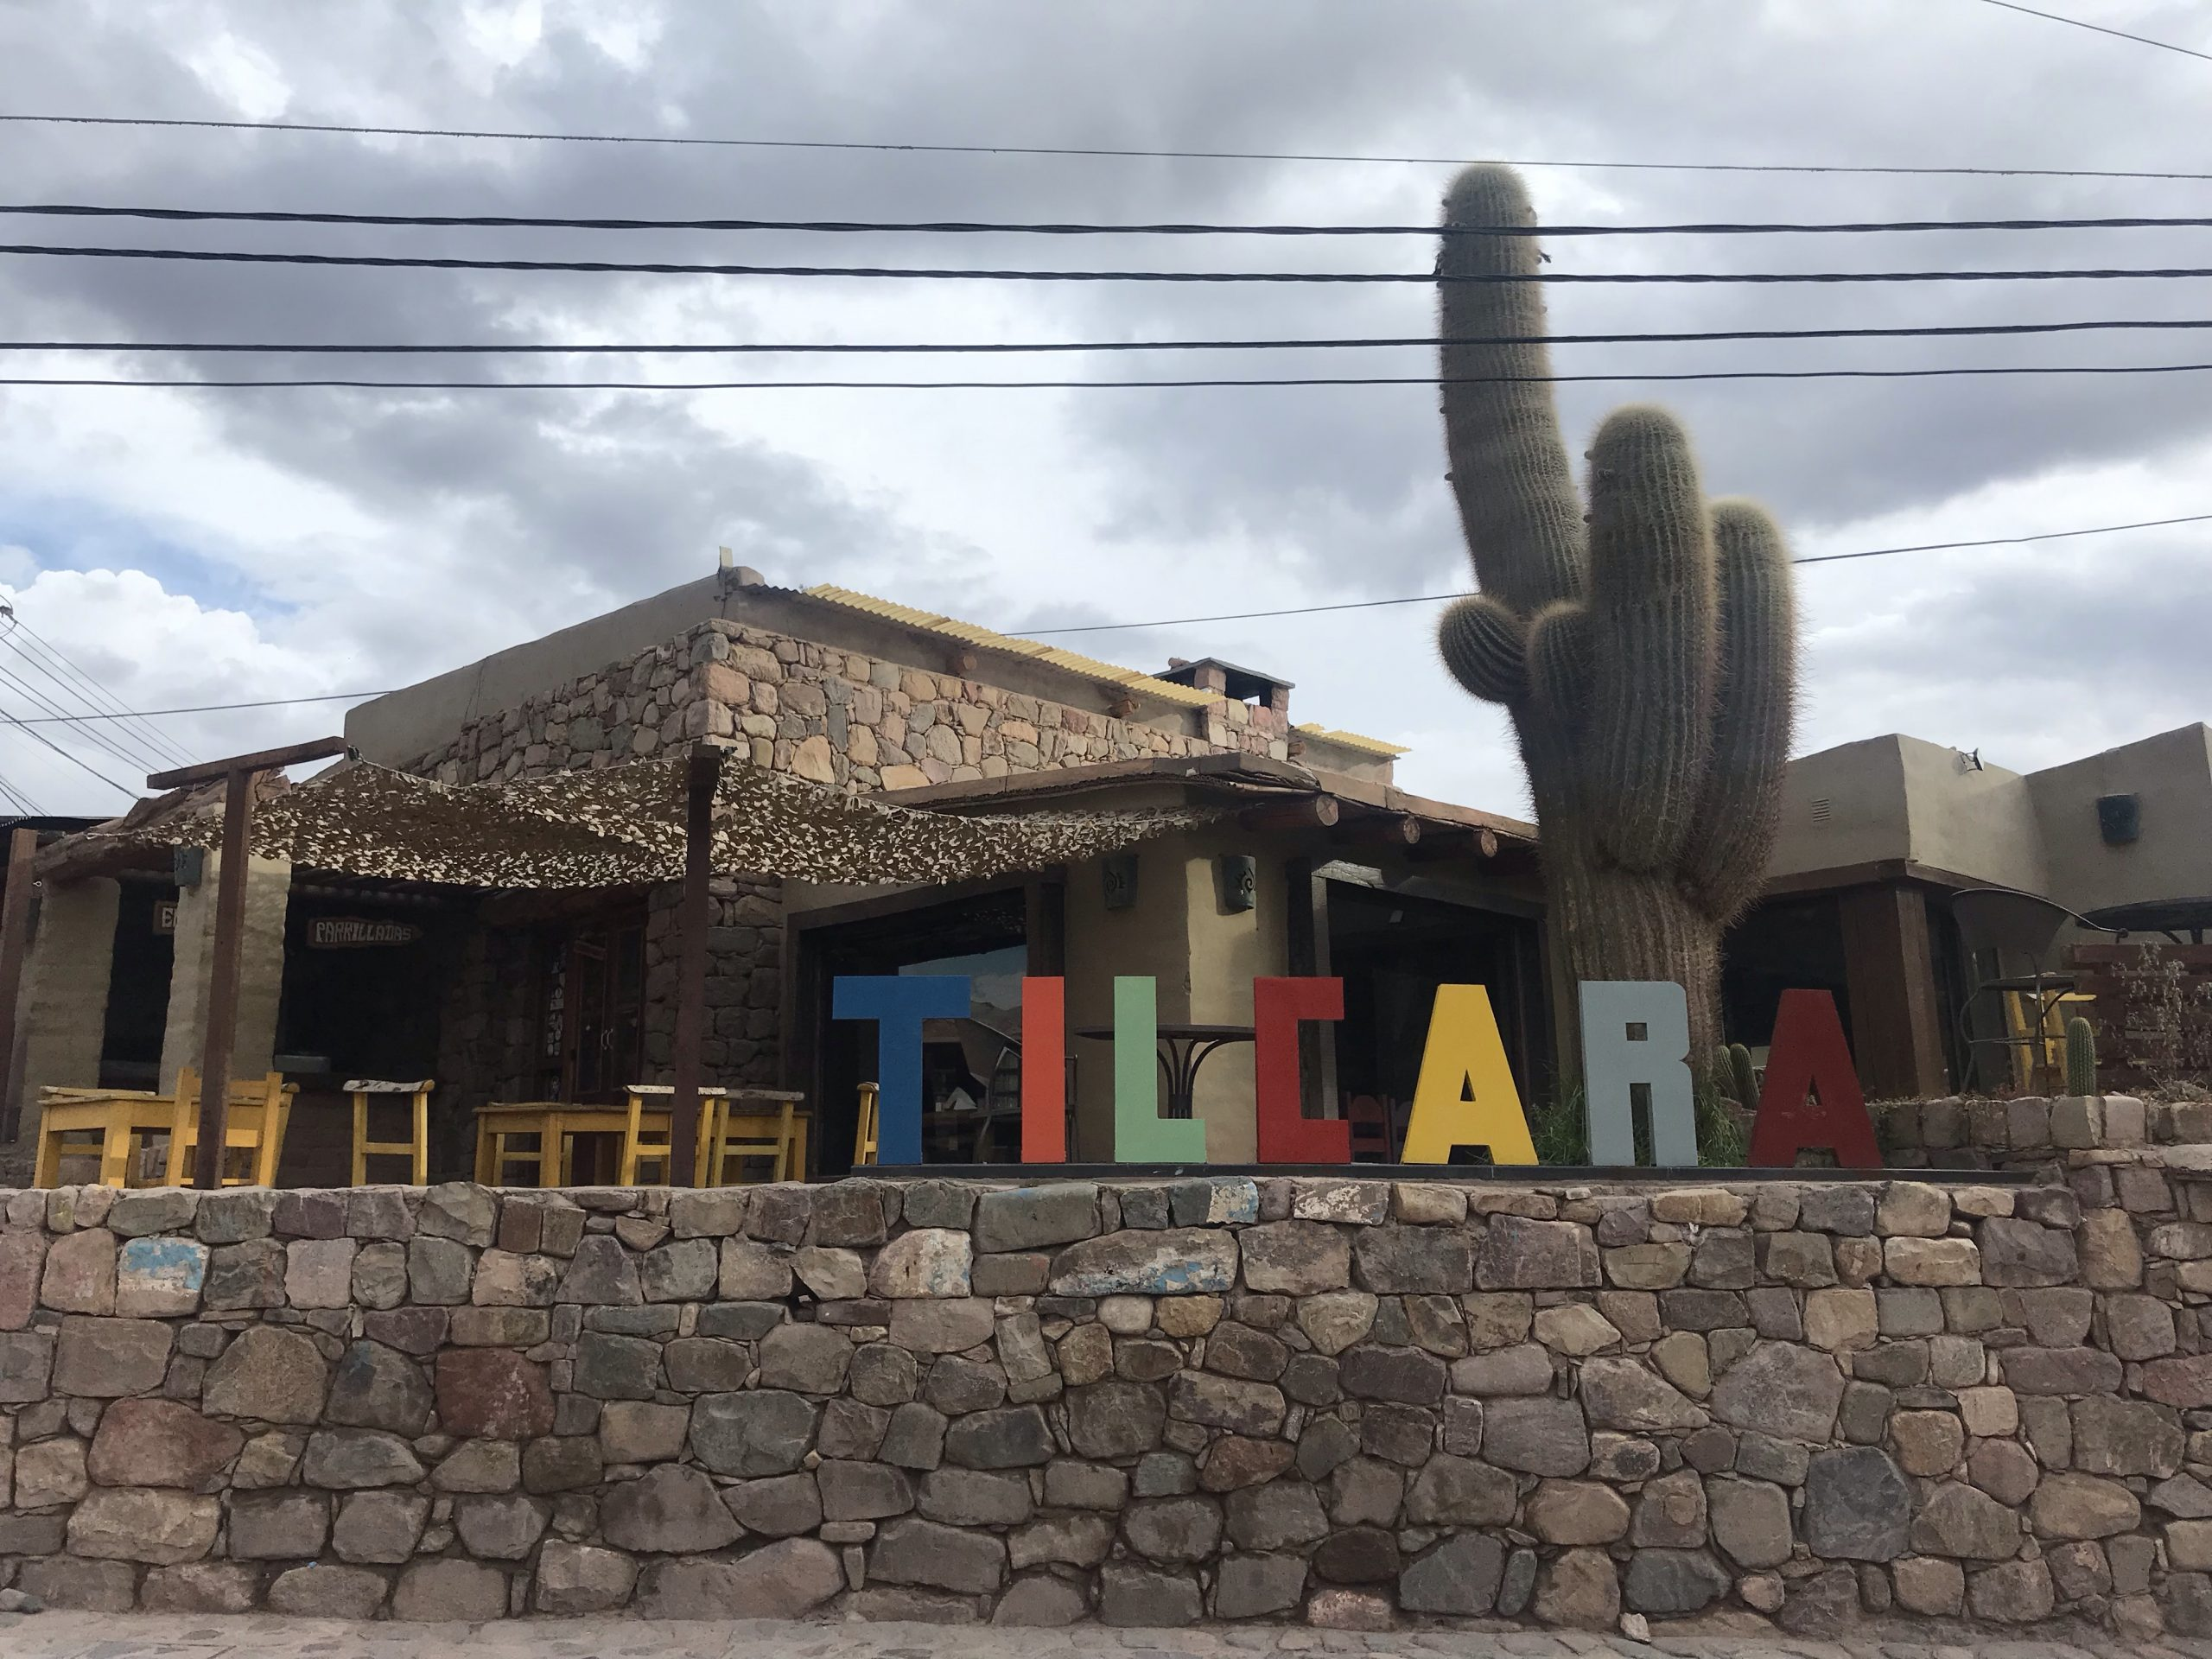 Add Tilcara to your Argentina itinerary